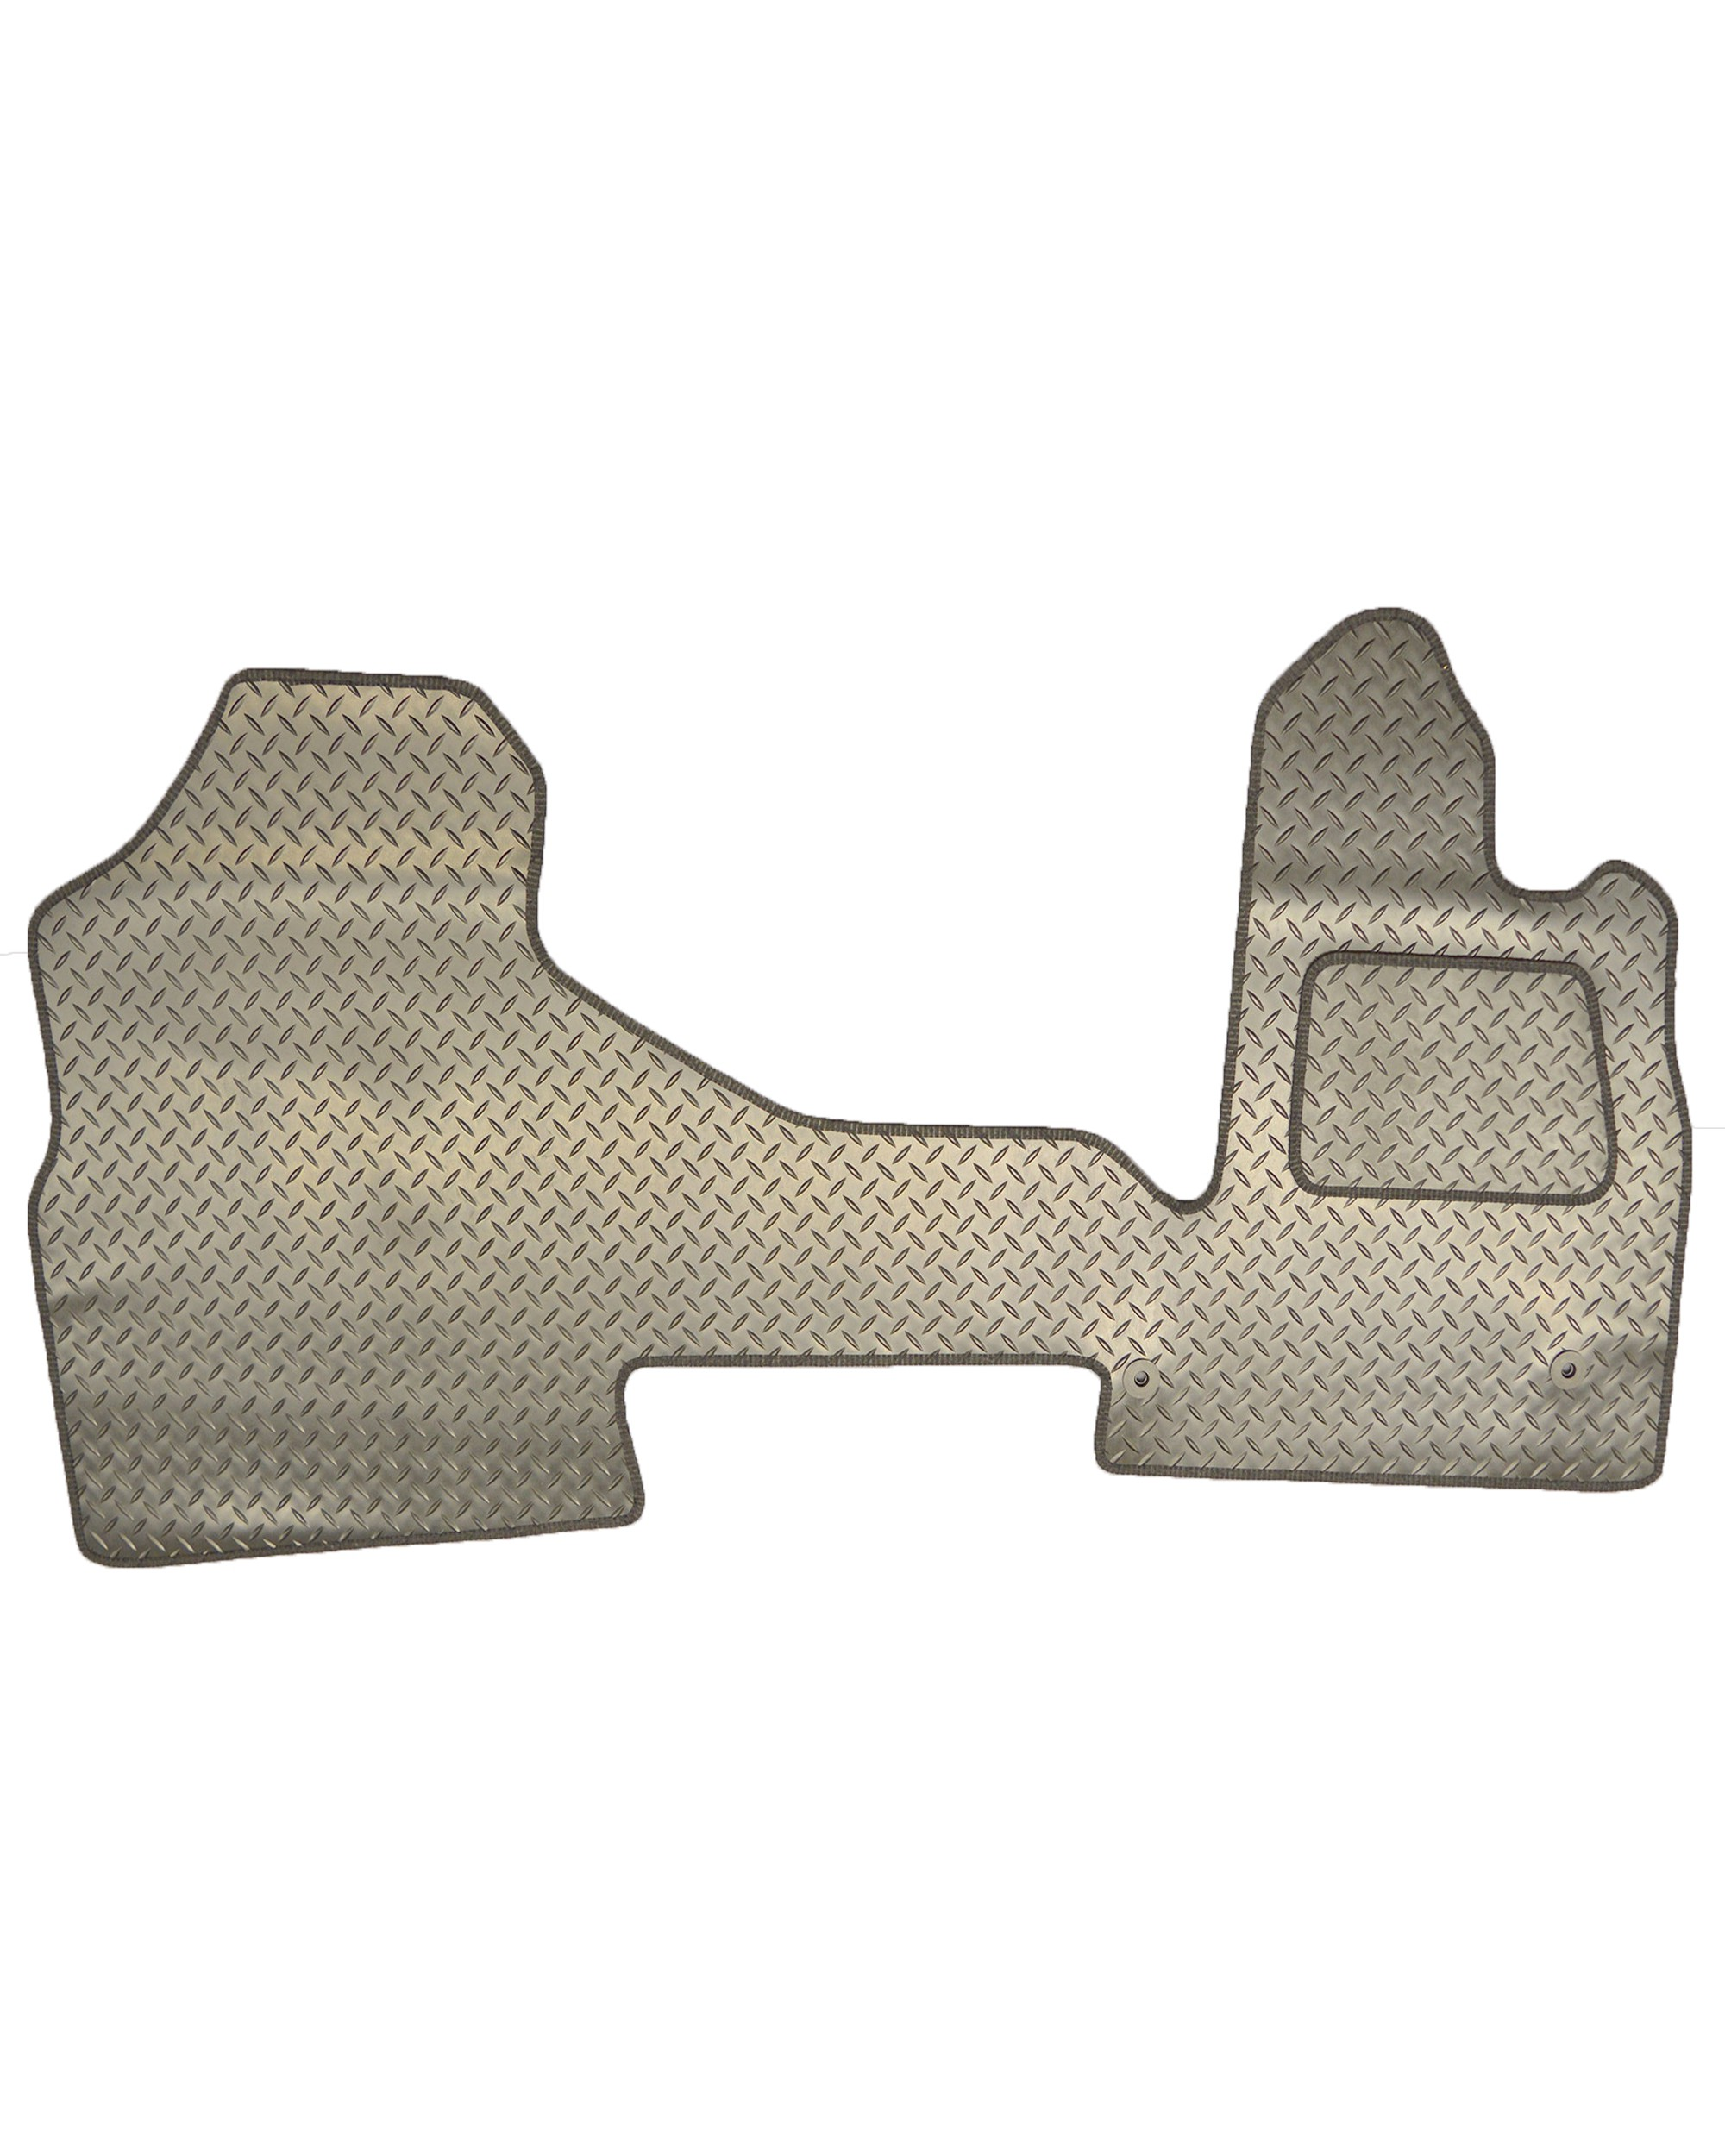 Citroen Berlingo 1 Piece Heavy Duty Tough Rubber Floor Mat. (2008-Present)